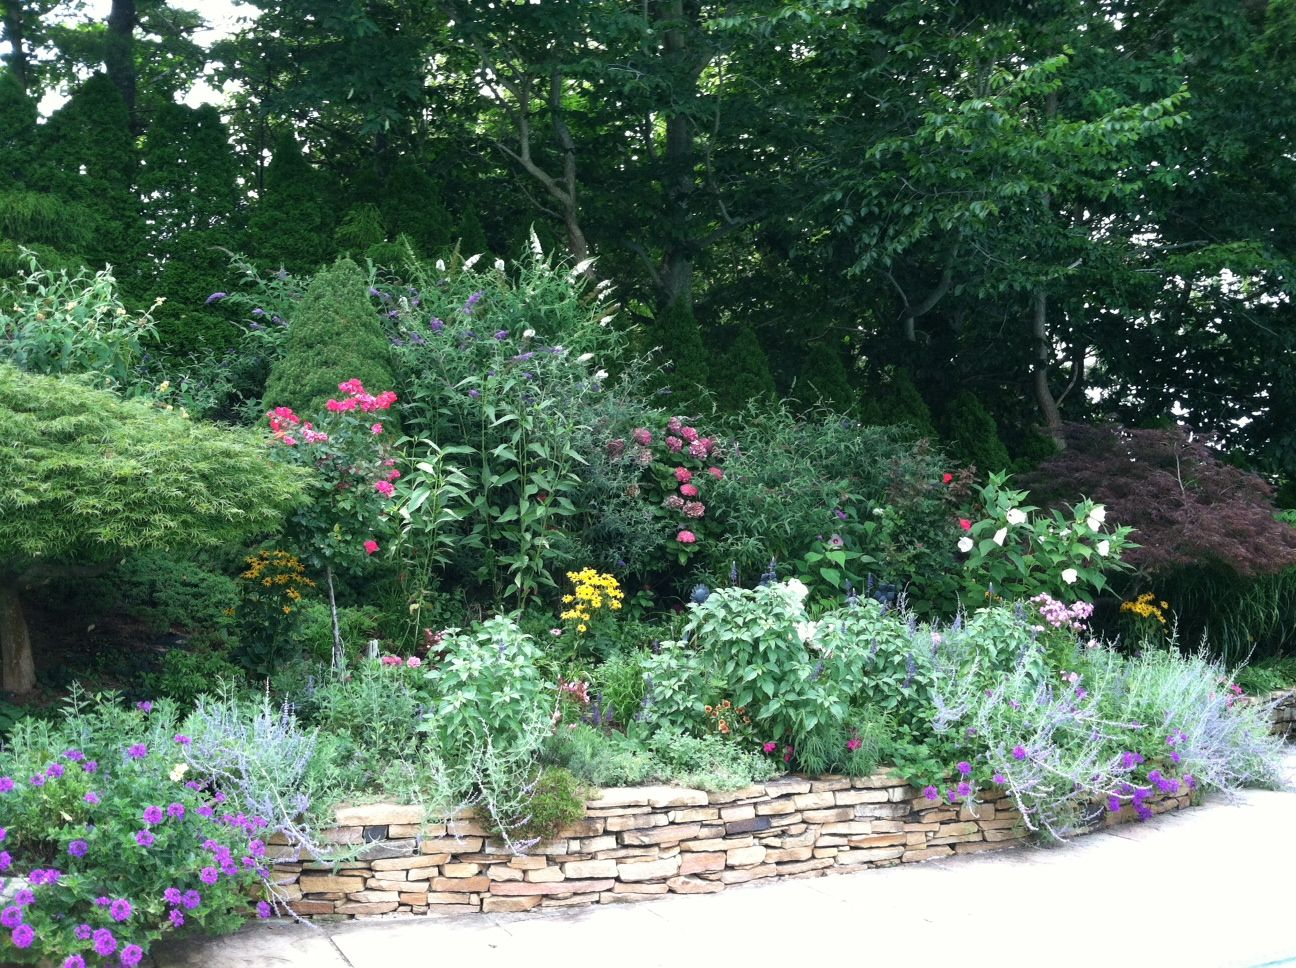 Landscaping Ideas For Backyard With Retaining Wall : More landscaping above retaining wall?  Backyard Ideas  Pinterest